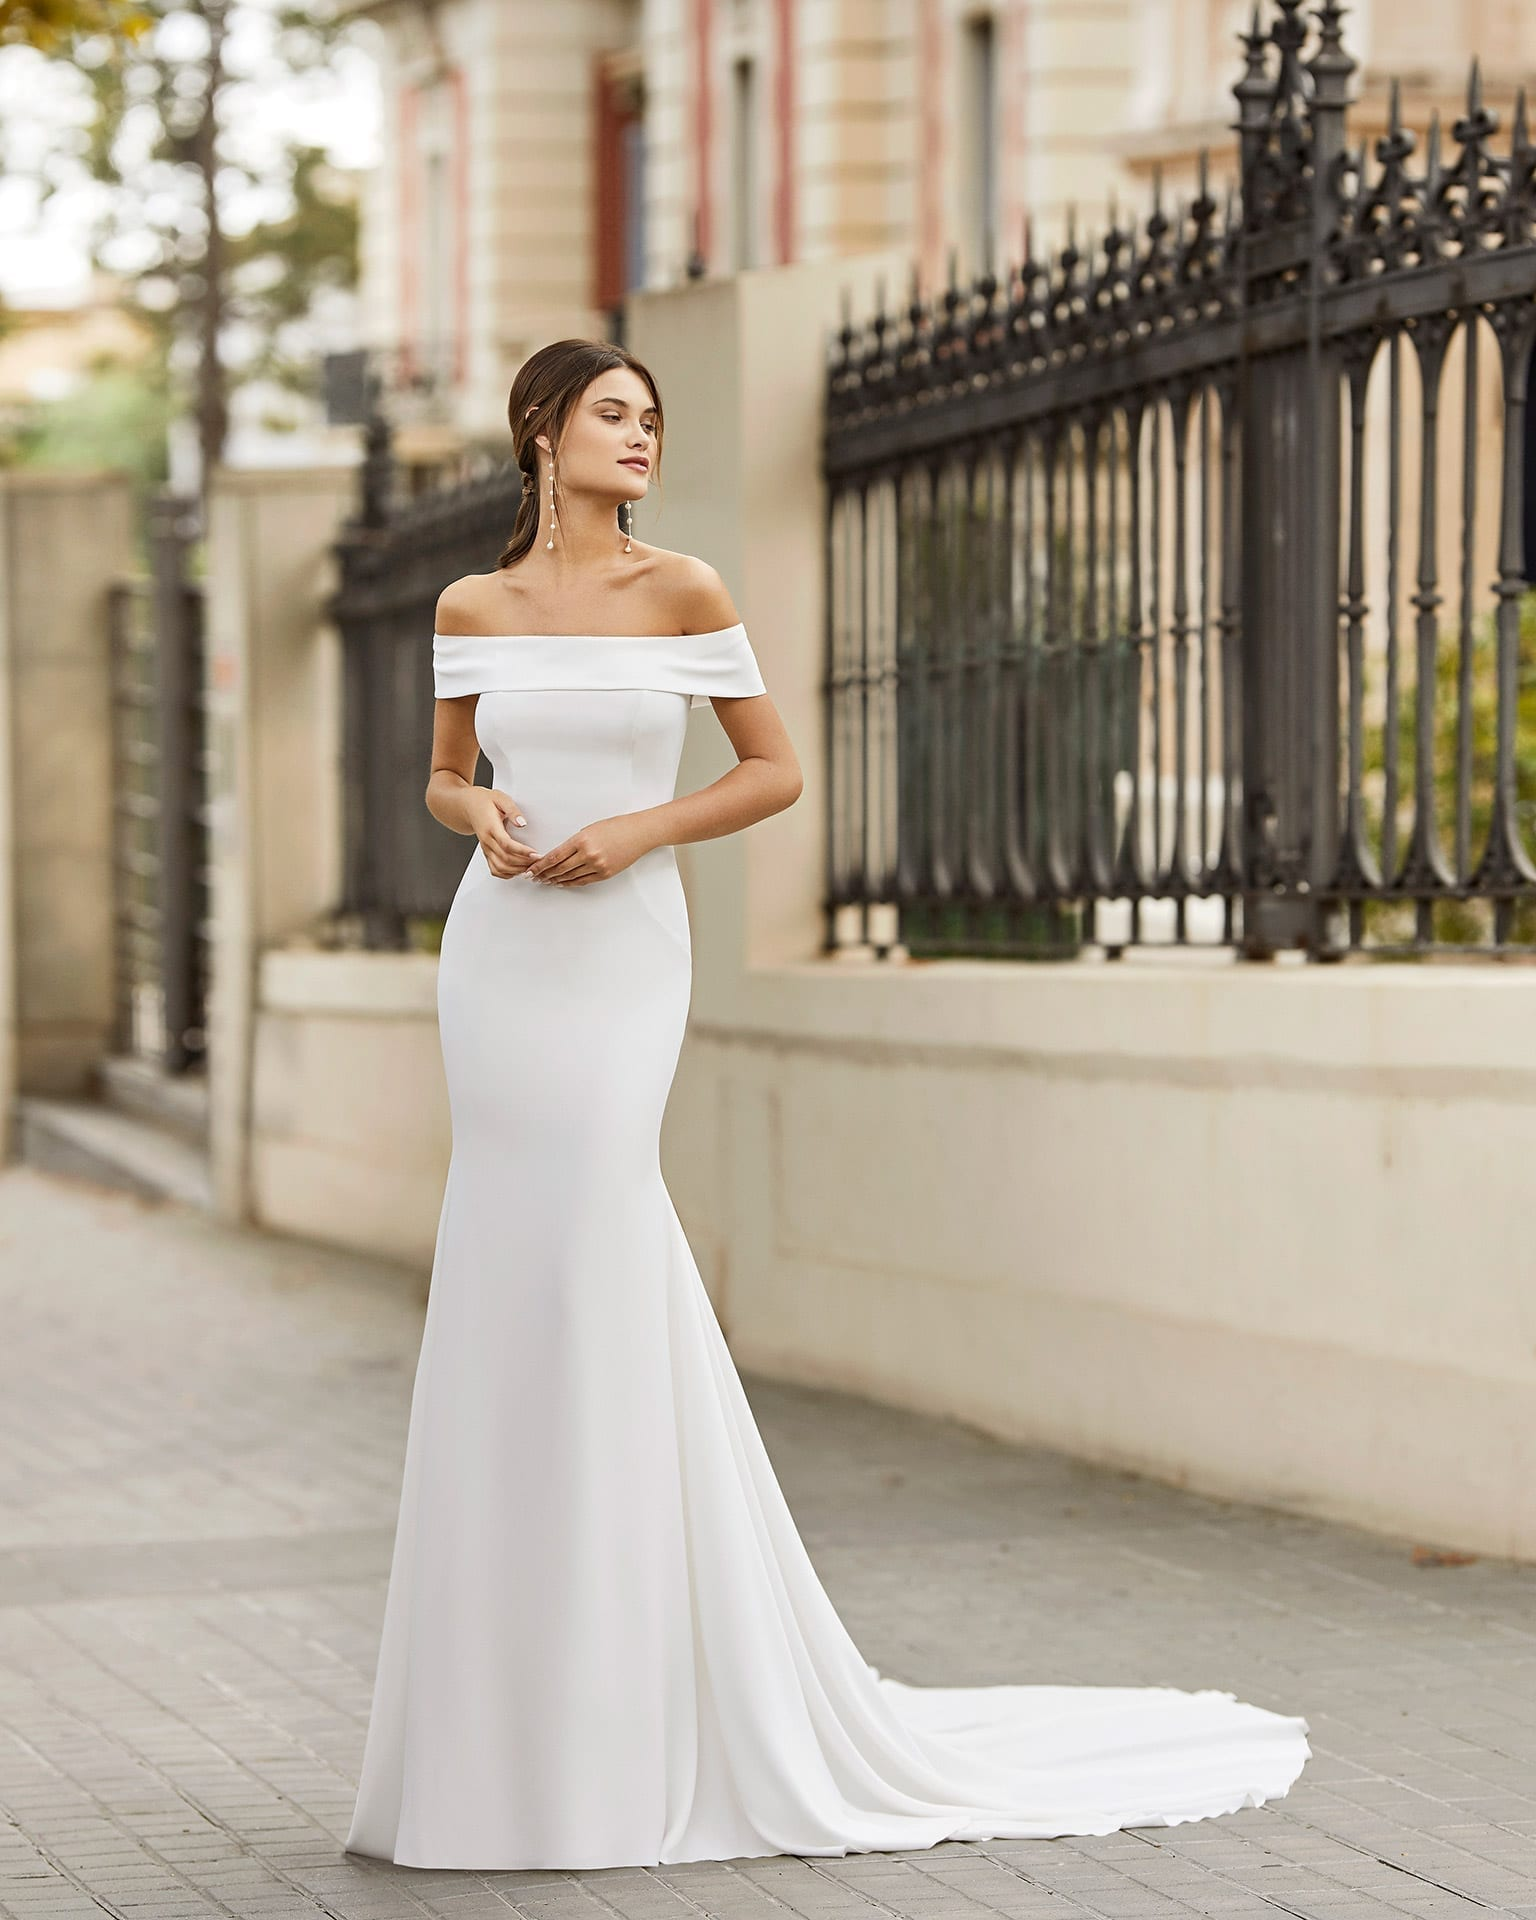 TAILAK Sleek Crepe Wedding Dress with Off the Shoulder Neckline